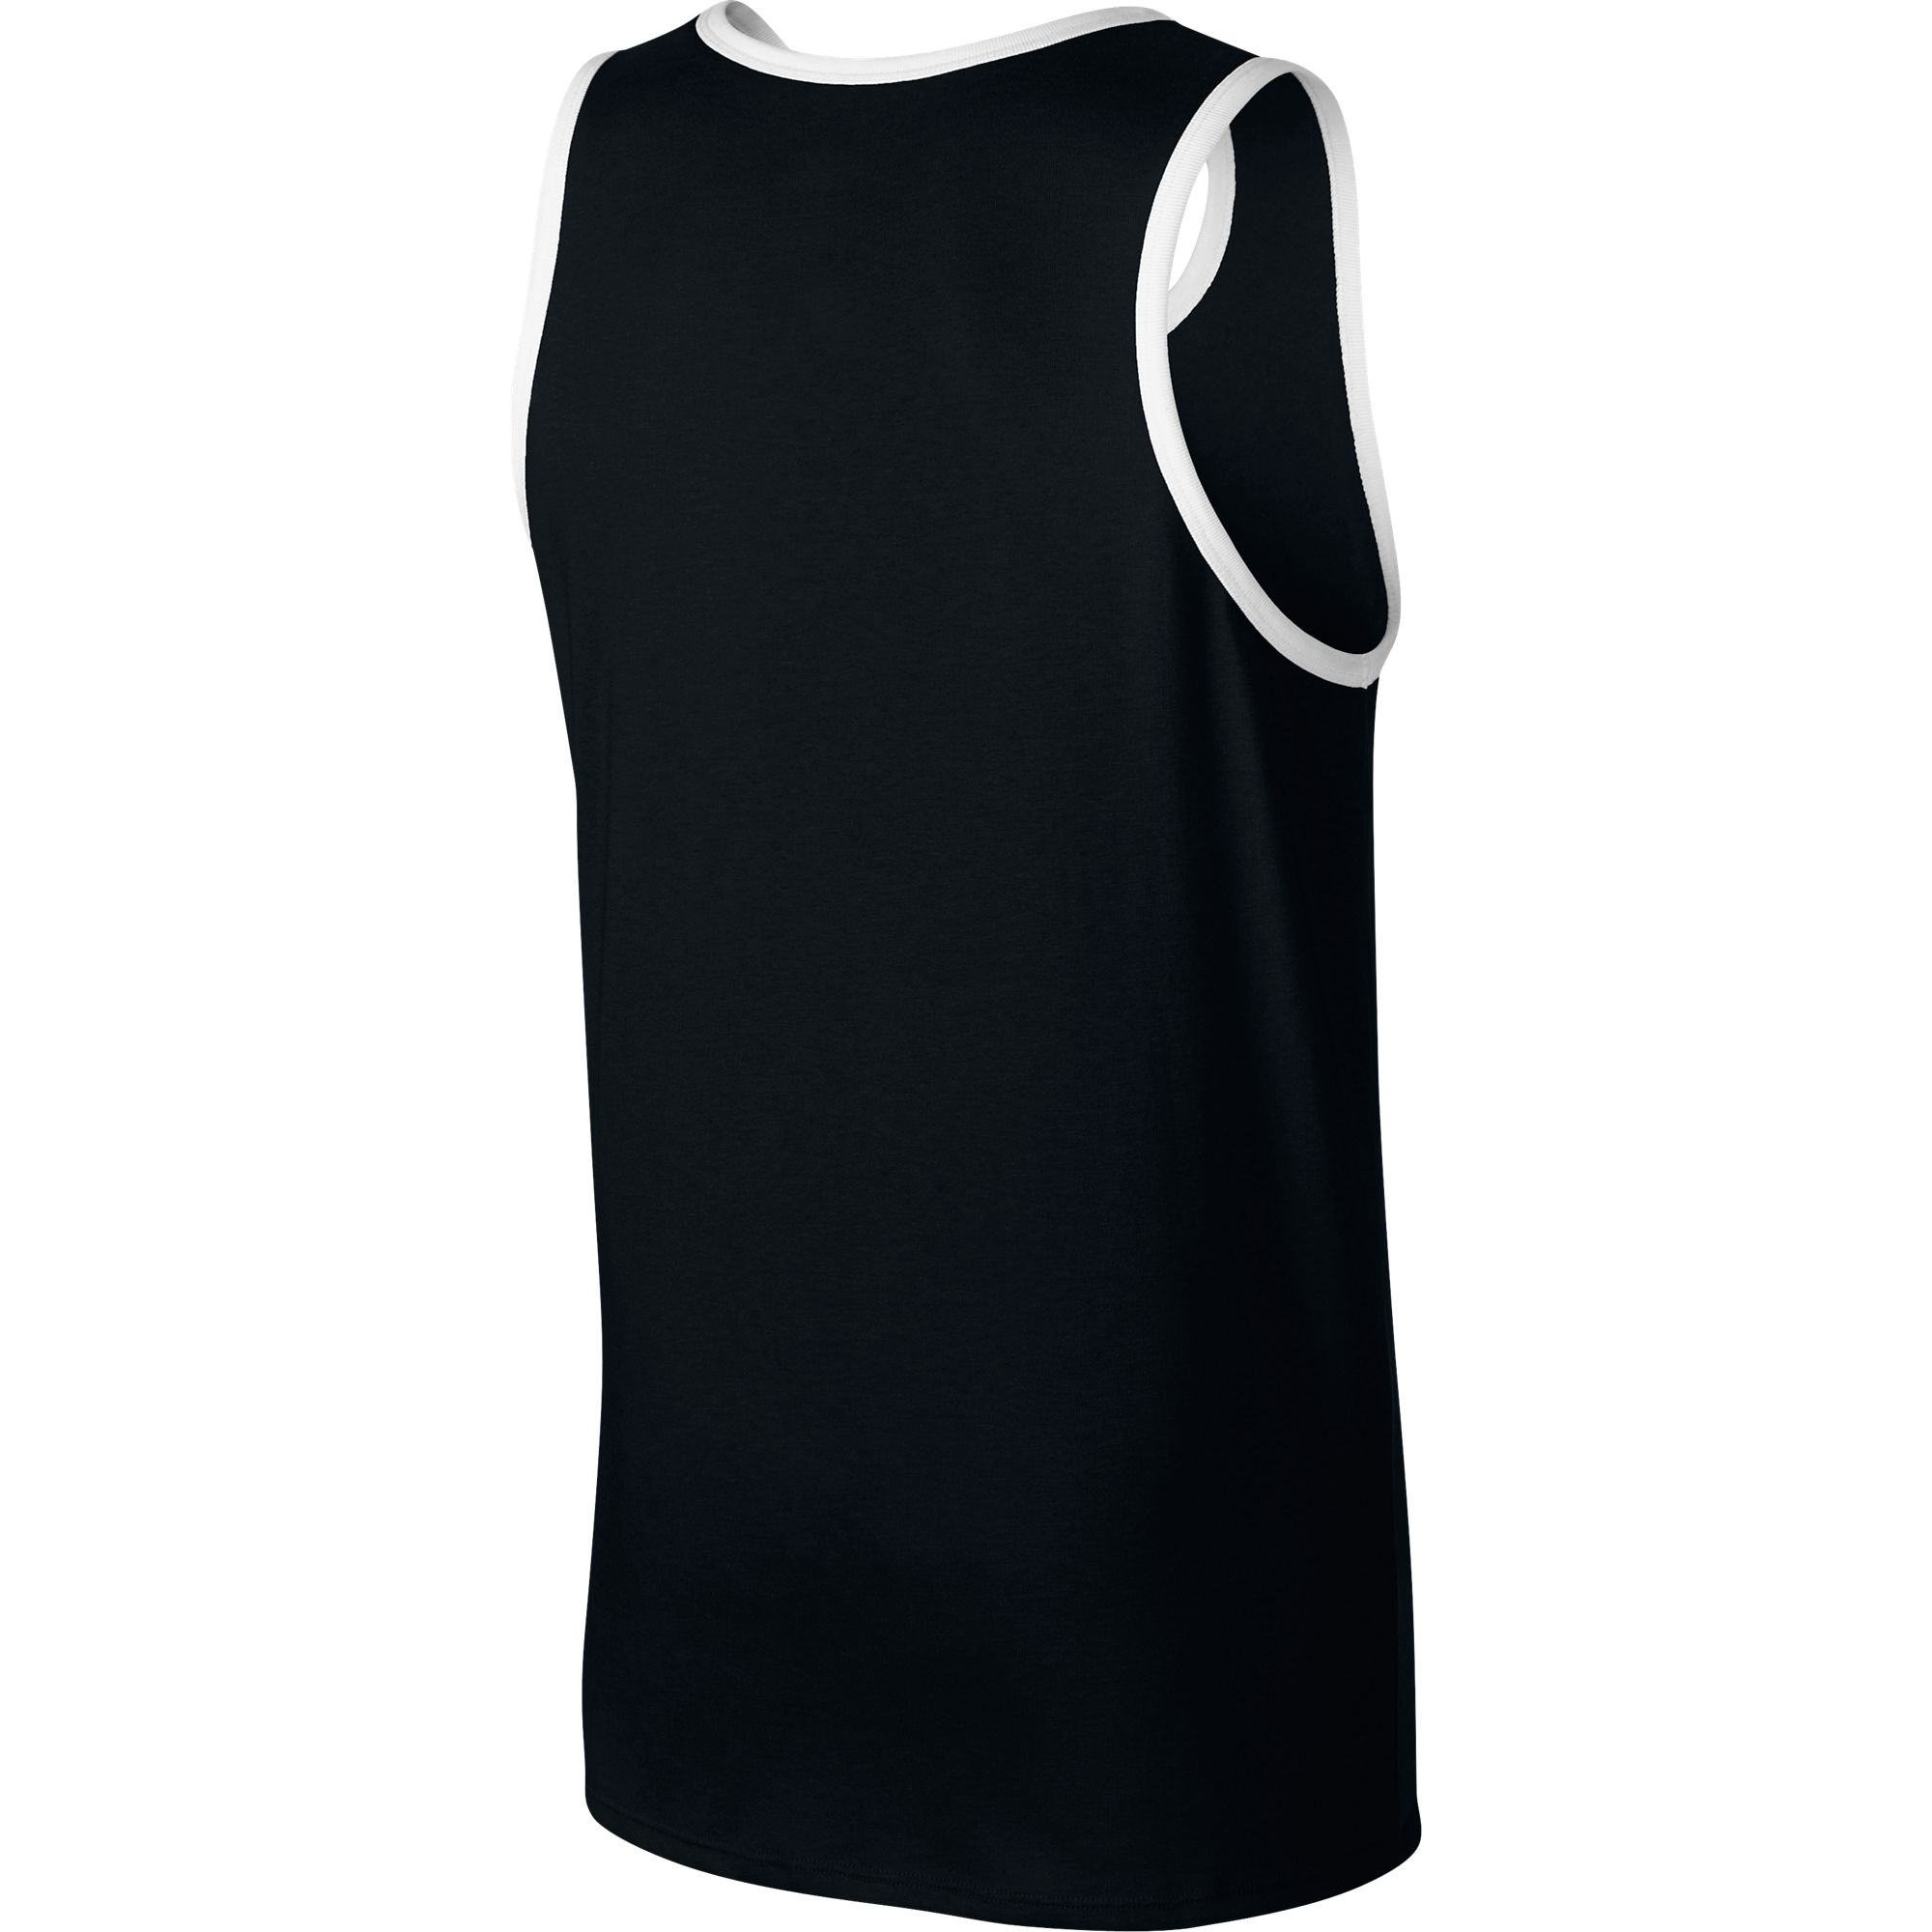 3014acca33 Details about Nike ACE Logo Men s Tank Top Athletic Black White 779234-011